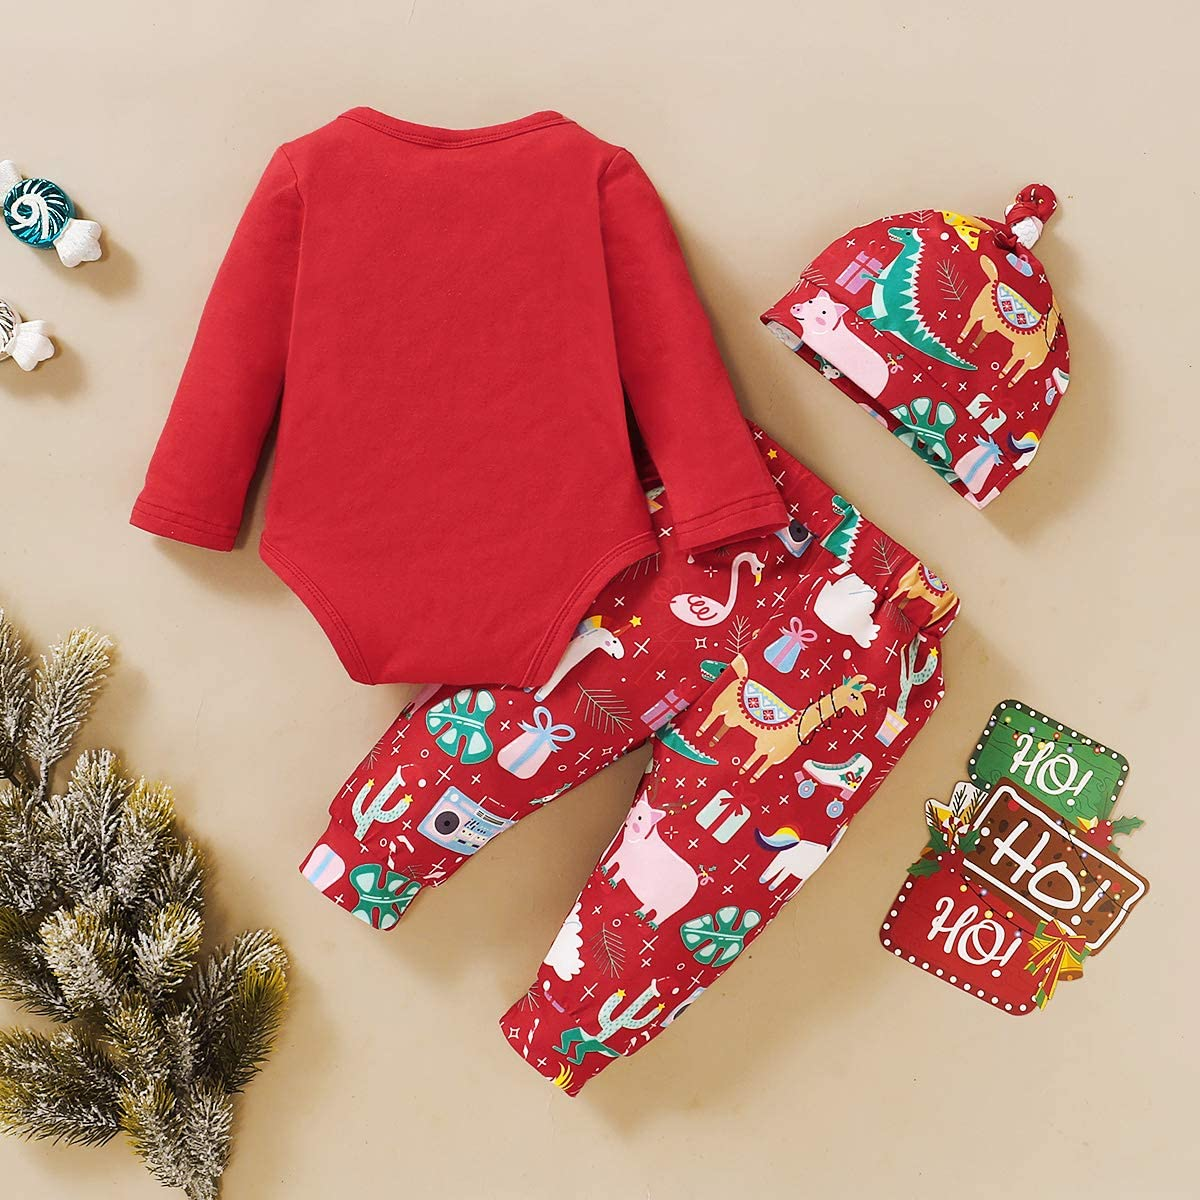 Hat 3Pcs for Baby Boy Girl Baby Christmas Outfit Newborn Romper Cotton Pants